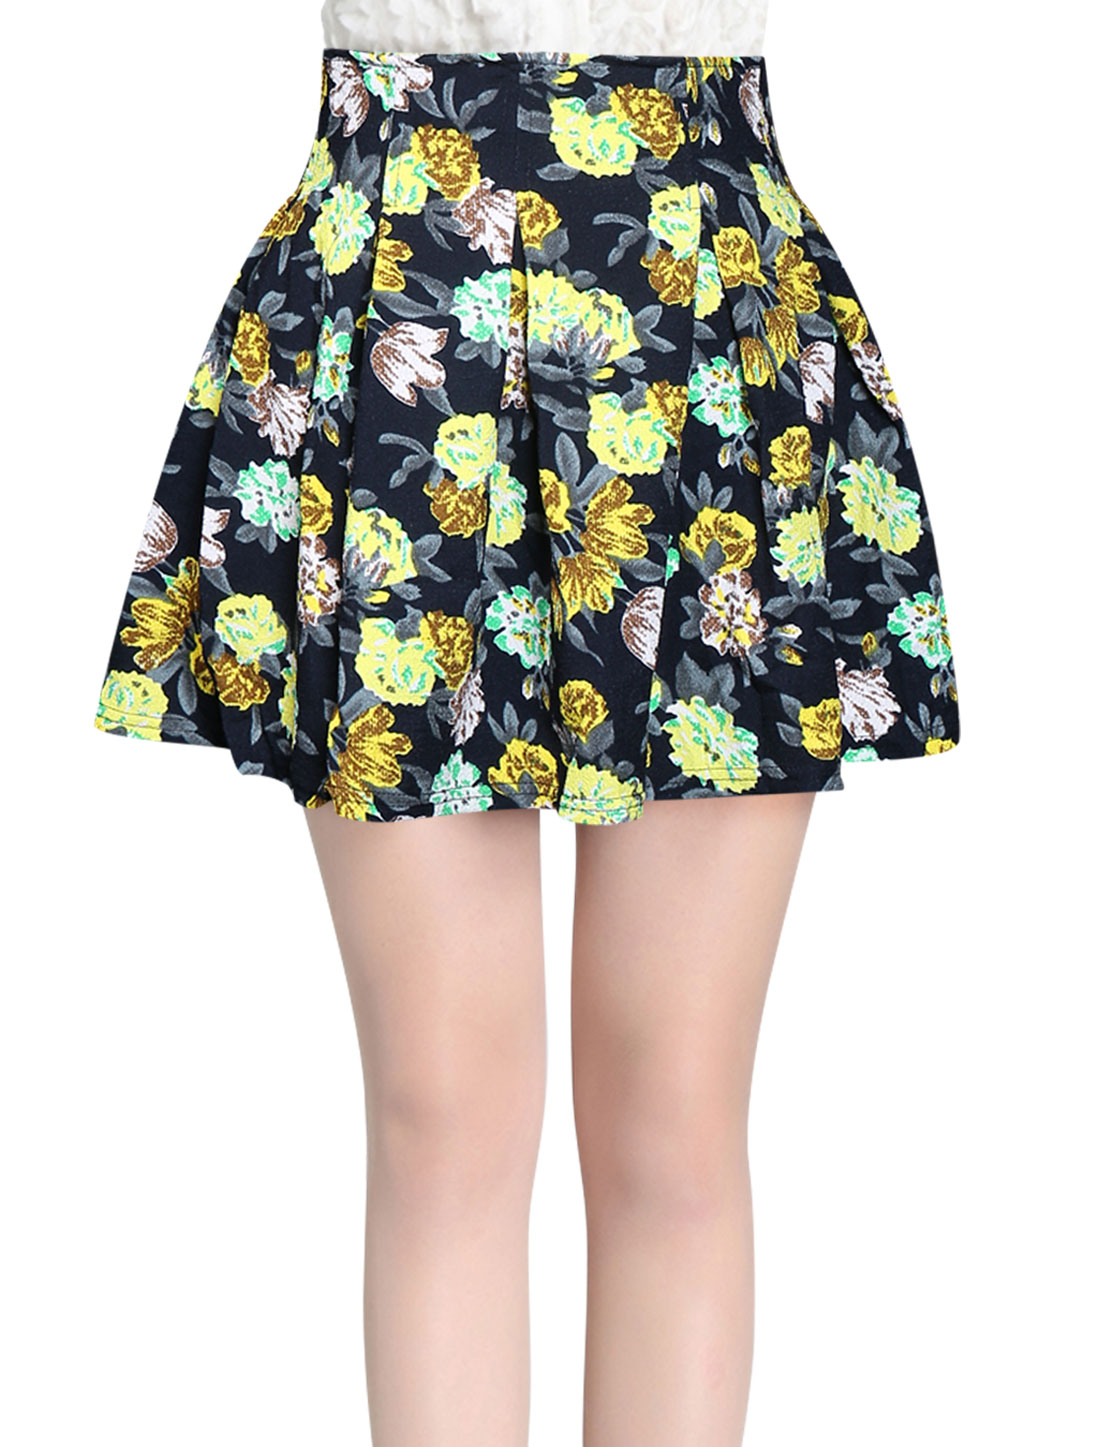 Ladies Yellow Hidden Zippered Back Floral Prints Mini Skirt M